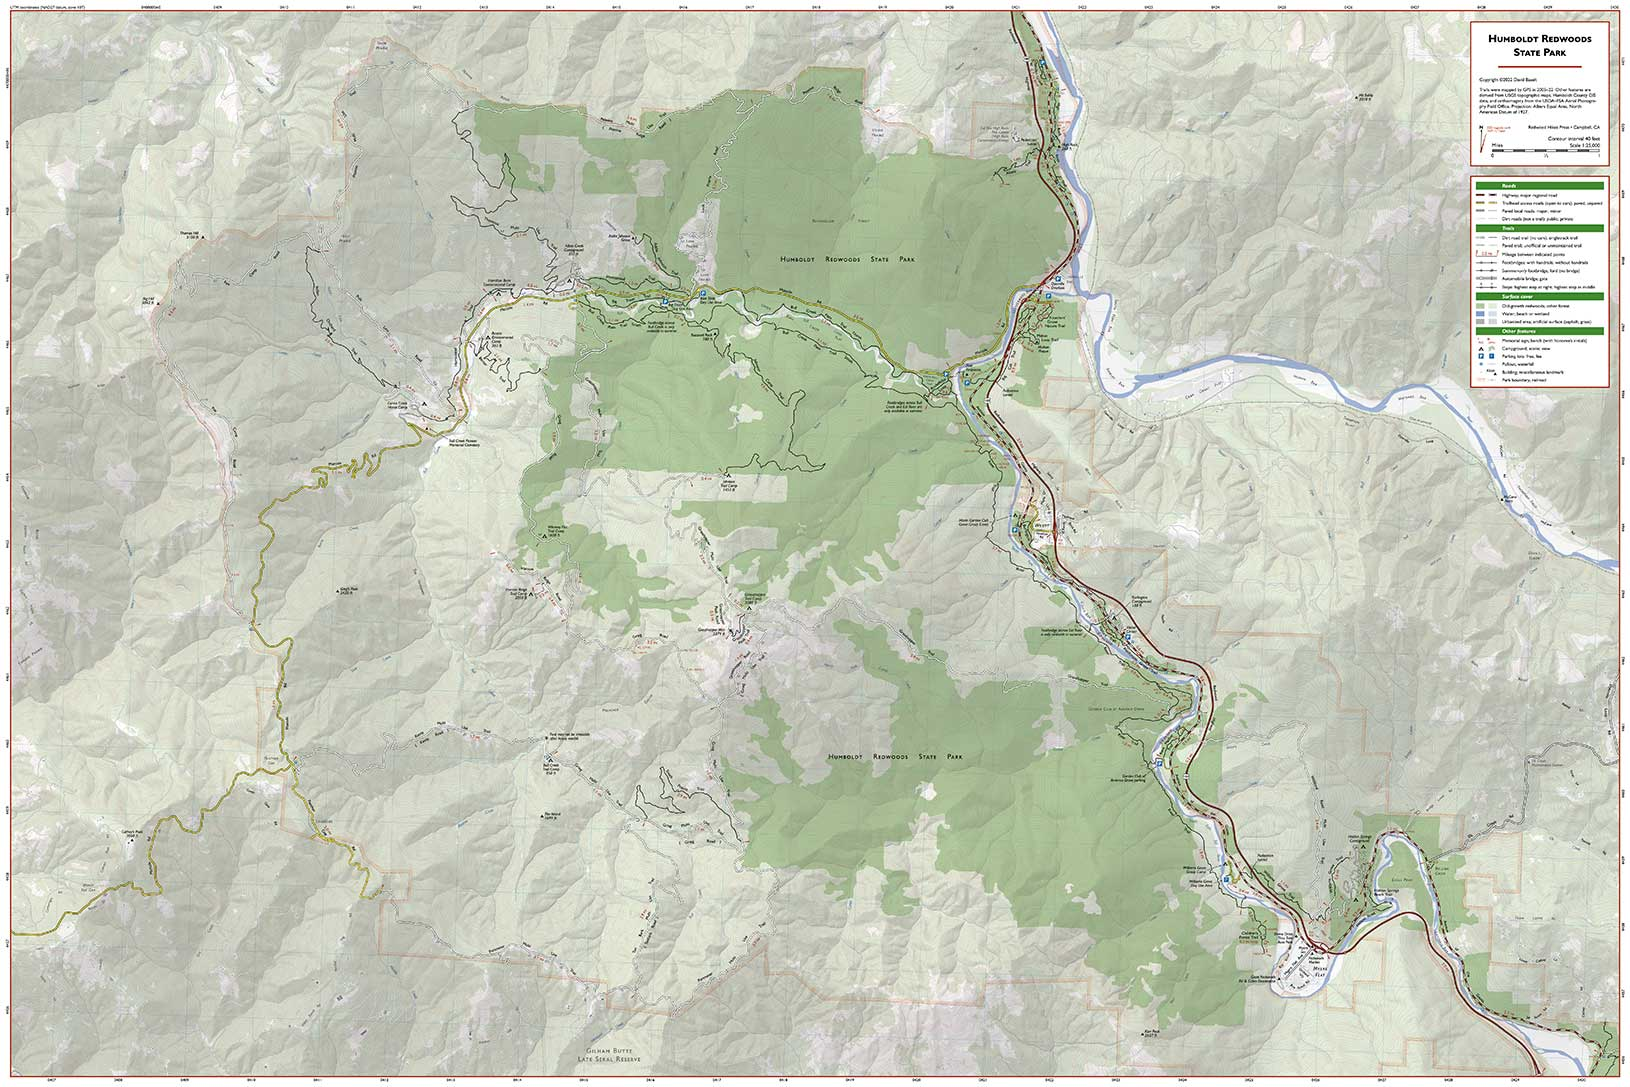 Humboldt Redwoods State Park trail map